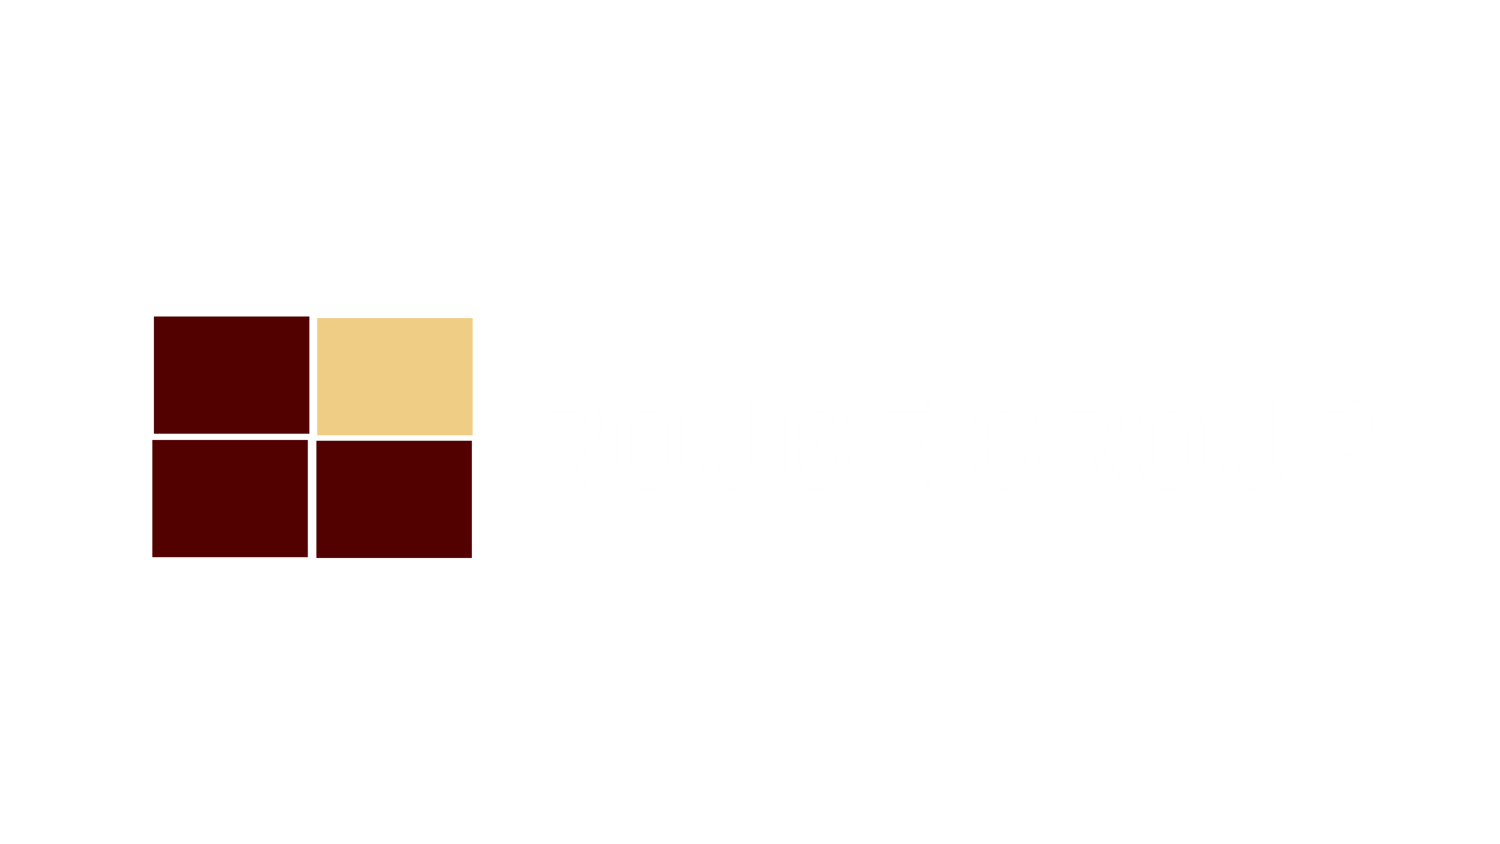 Rouge Group: Management Consulting For Digital Transformation, Cloud, Security, and IOT